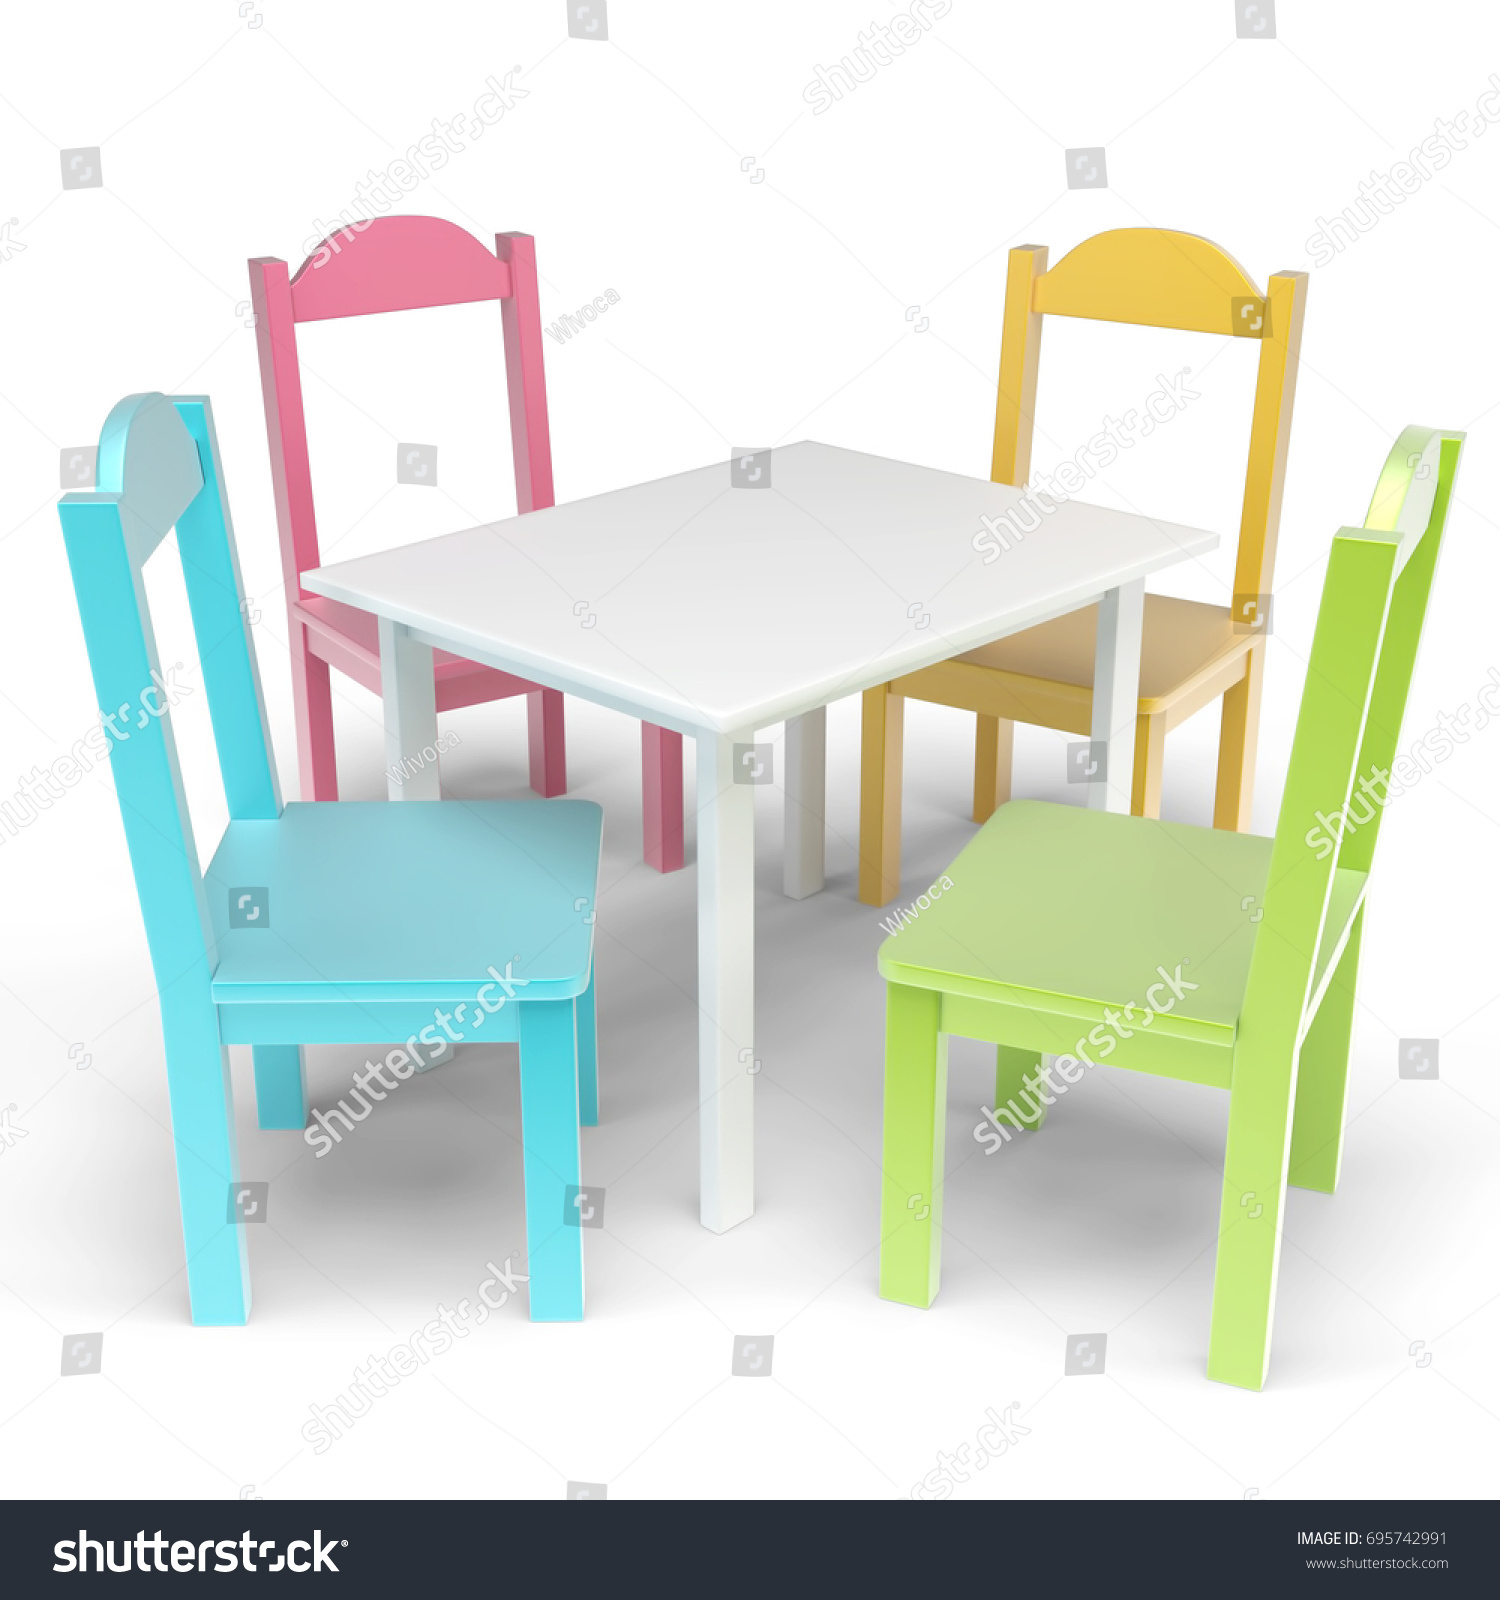 Kid Table And Chair Vibrant Colored Kids Table Chair Set Stock Illustration Royalty